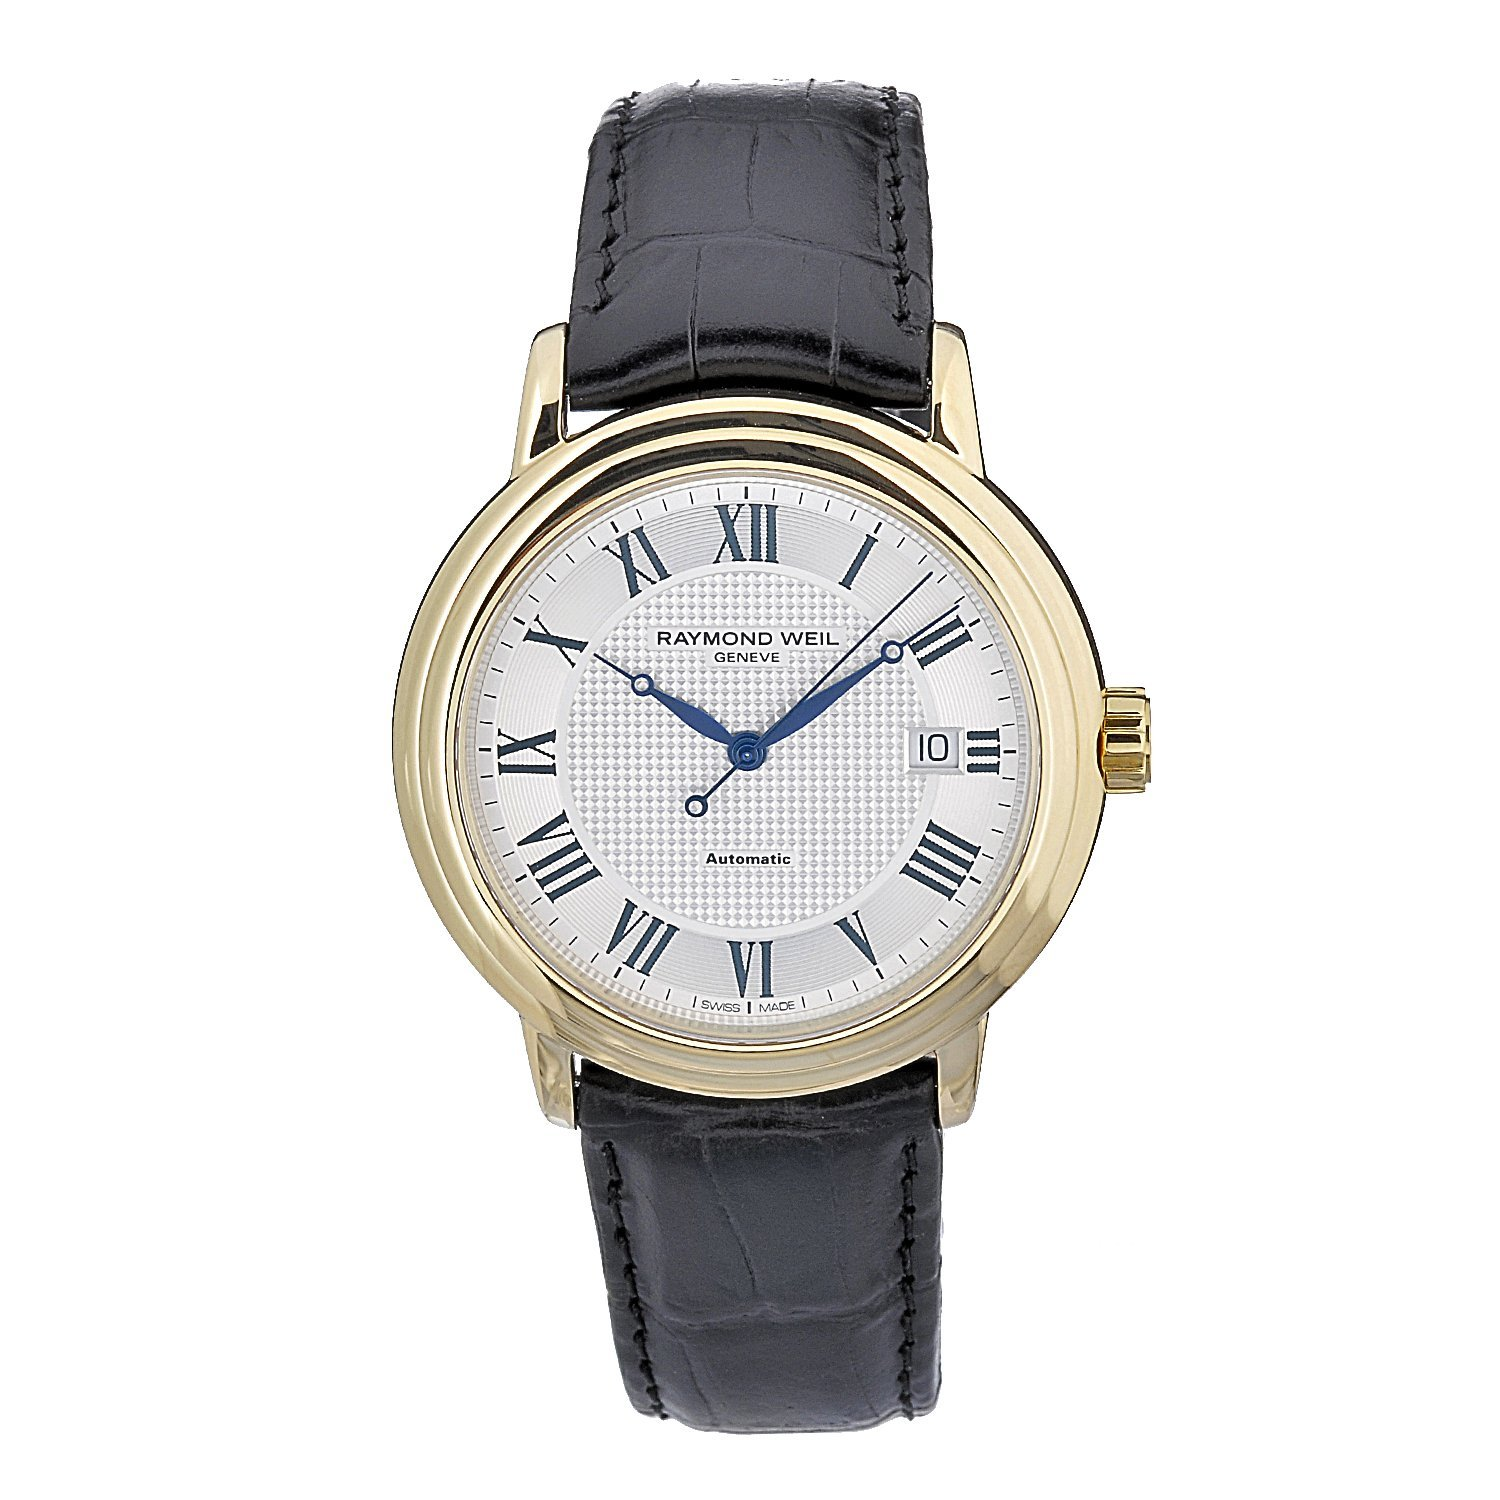 Raymond Weil Men's Automatic Goldtone Steel Watch